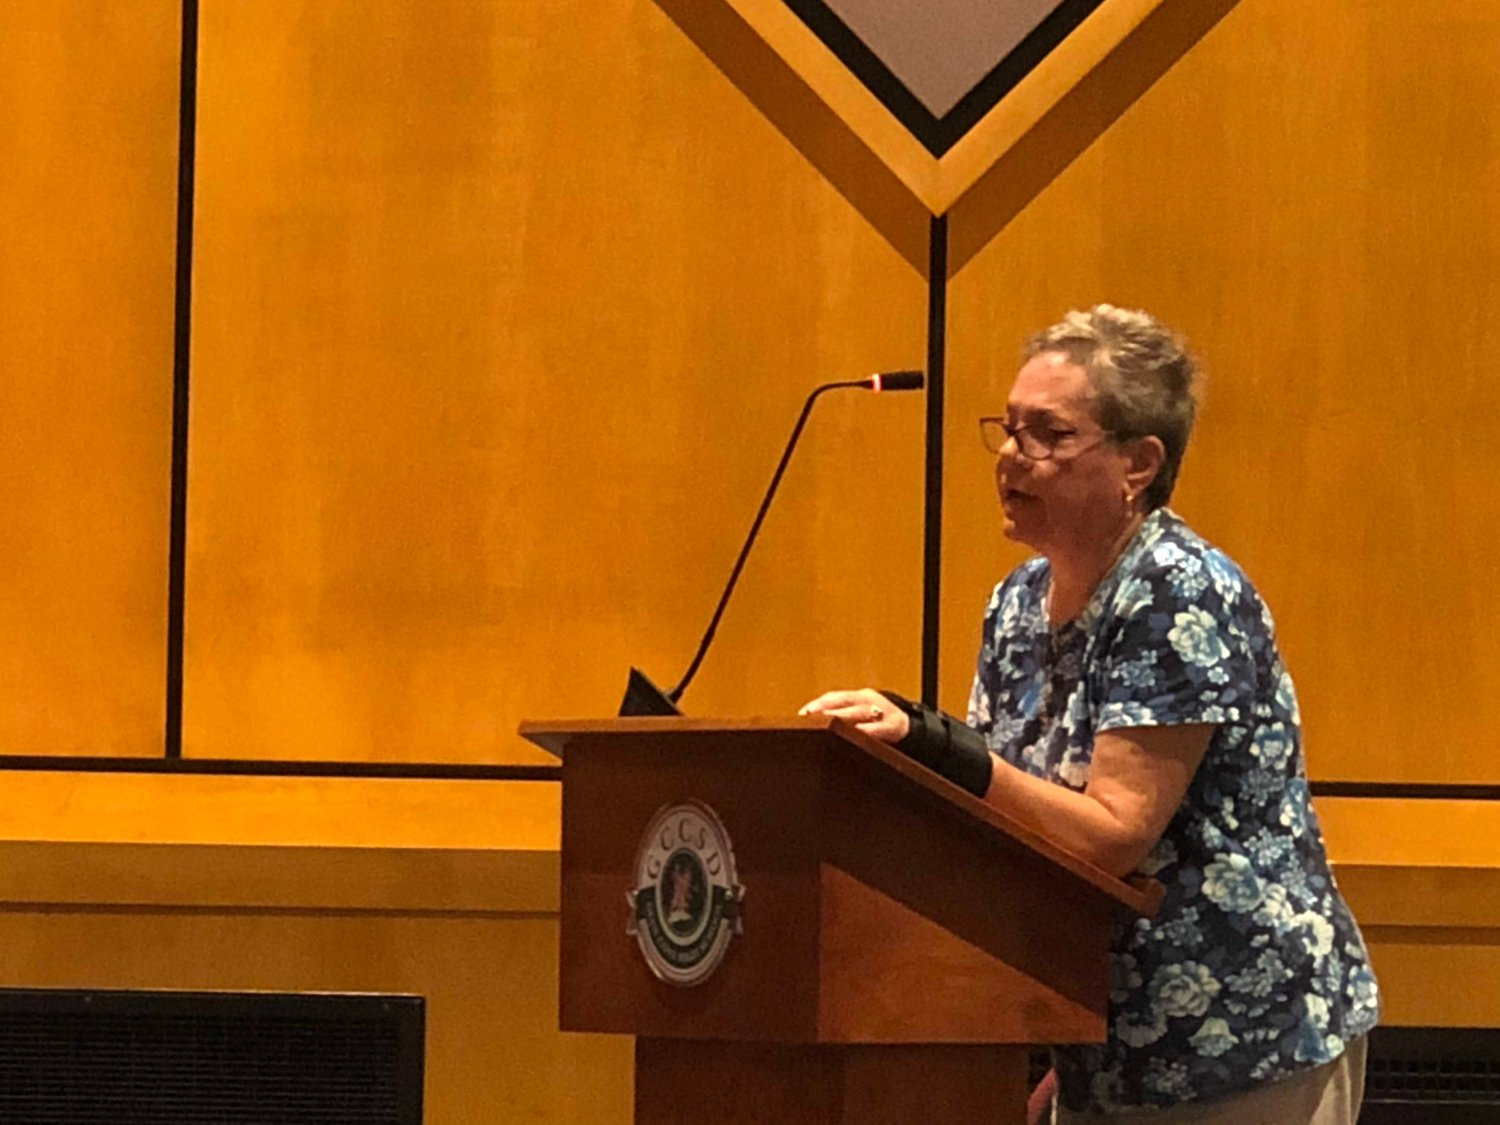 Glen Cove resident Janet Black said at the Aug. 14 Board of Education meeting that she opposed any reimbursement for property taxes on 31 Sea Cliff Ave. by the school district to the city.